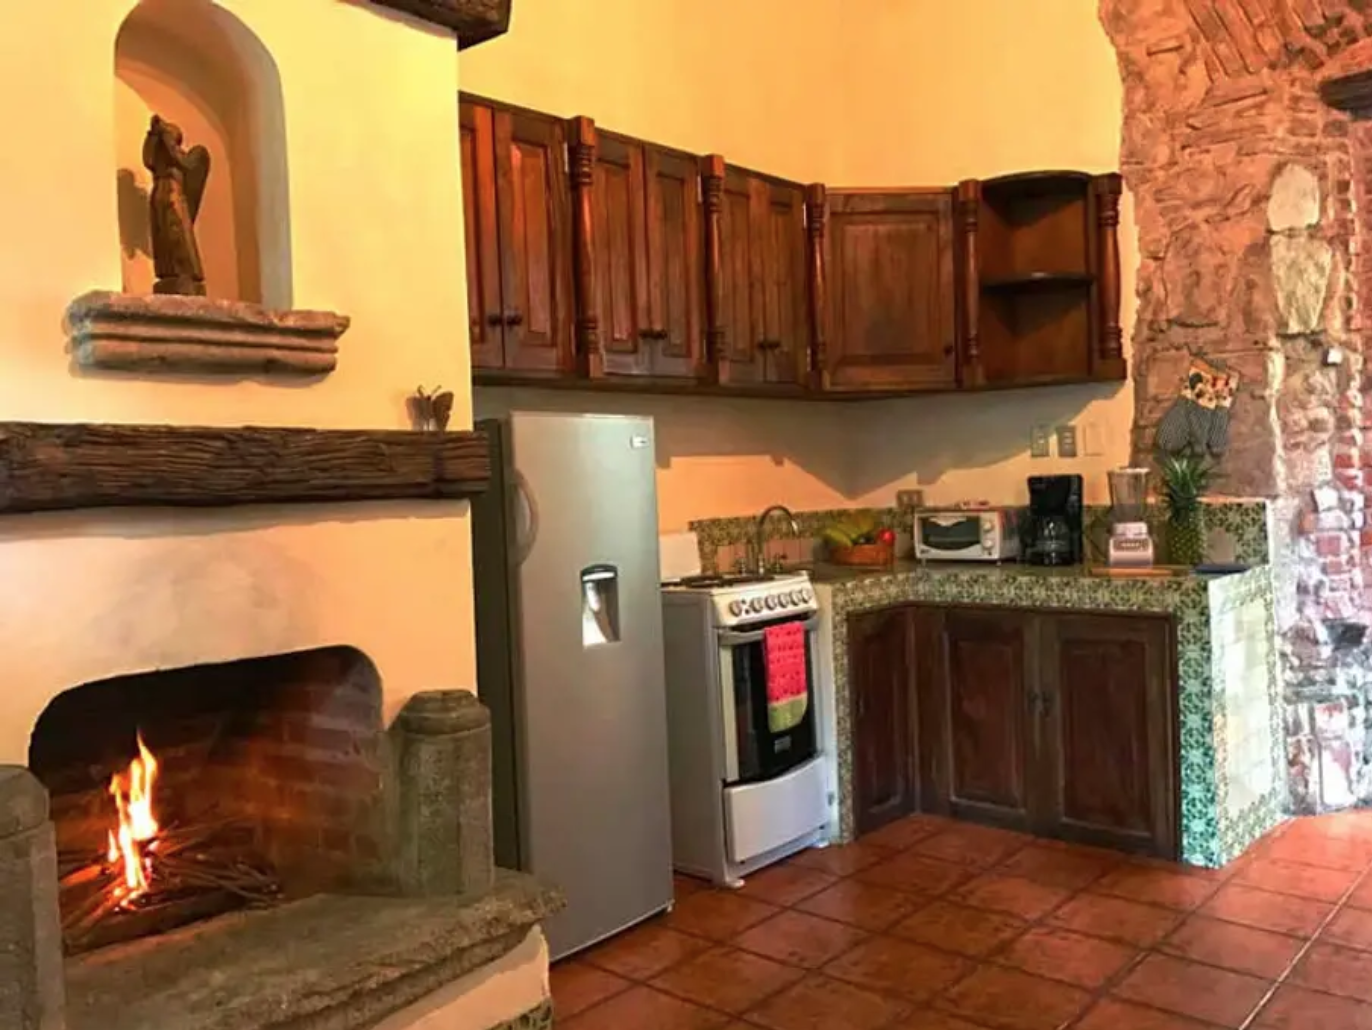 Cocina Con Chimena Estilo Colonial Antigua Guatemala Home Decor Decor Fireplace